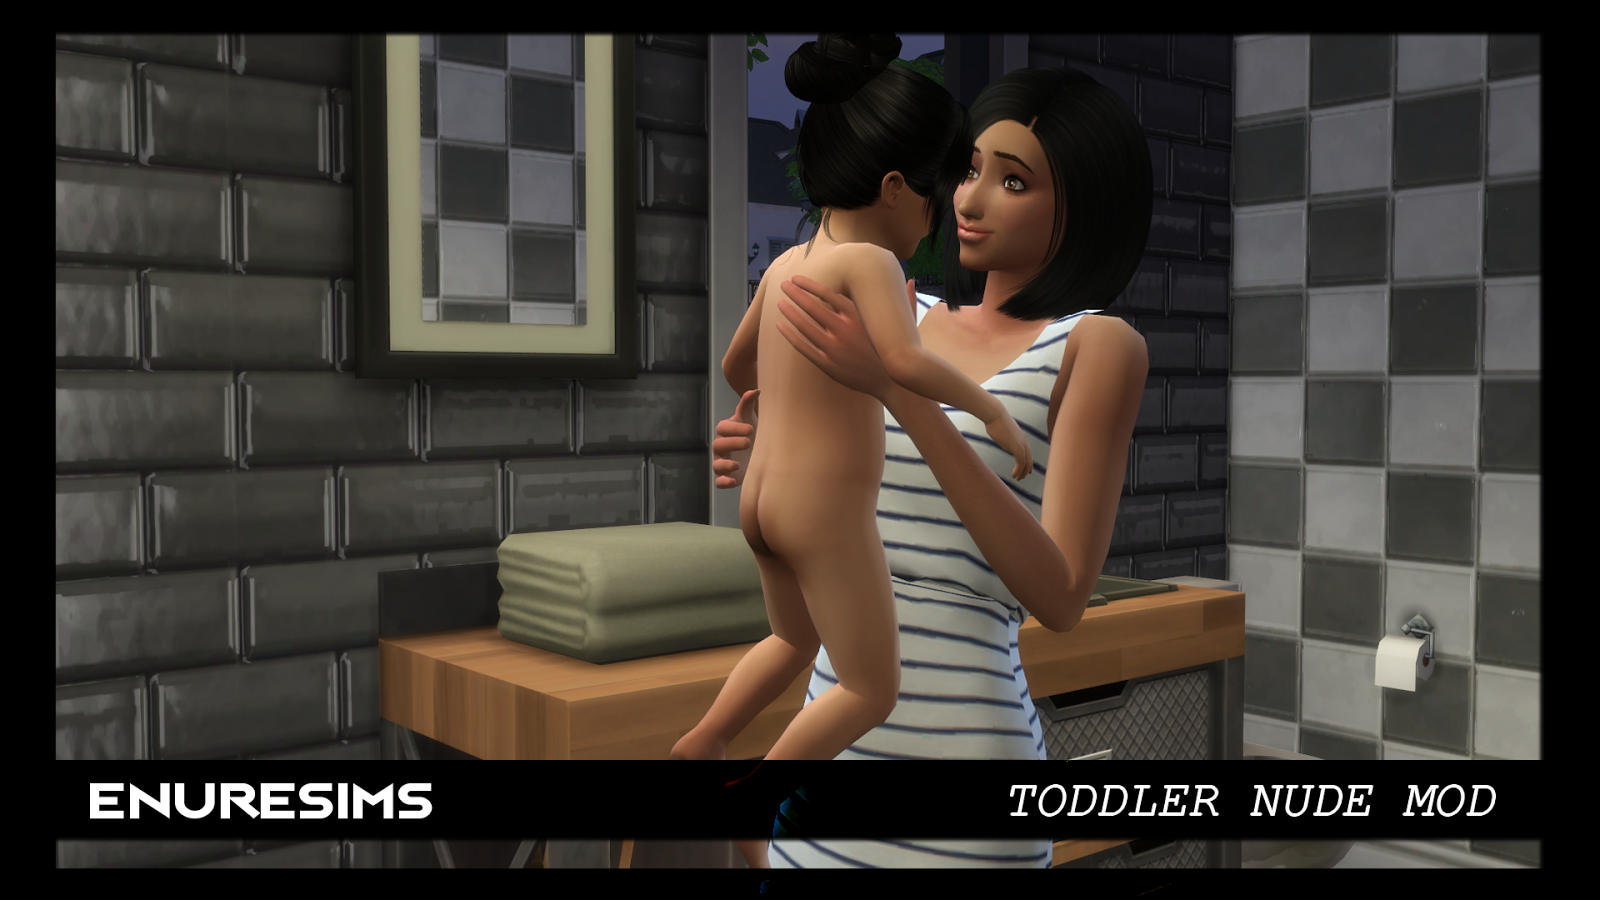 the sims 4 naked mod